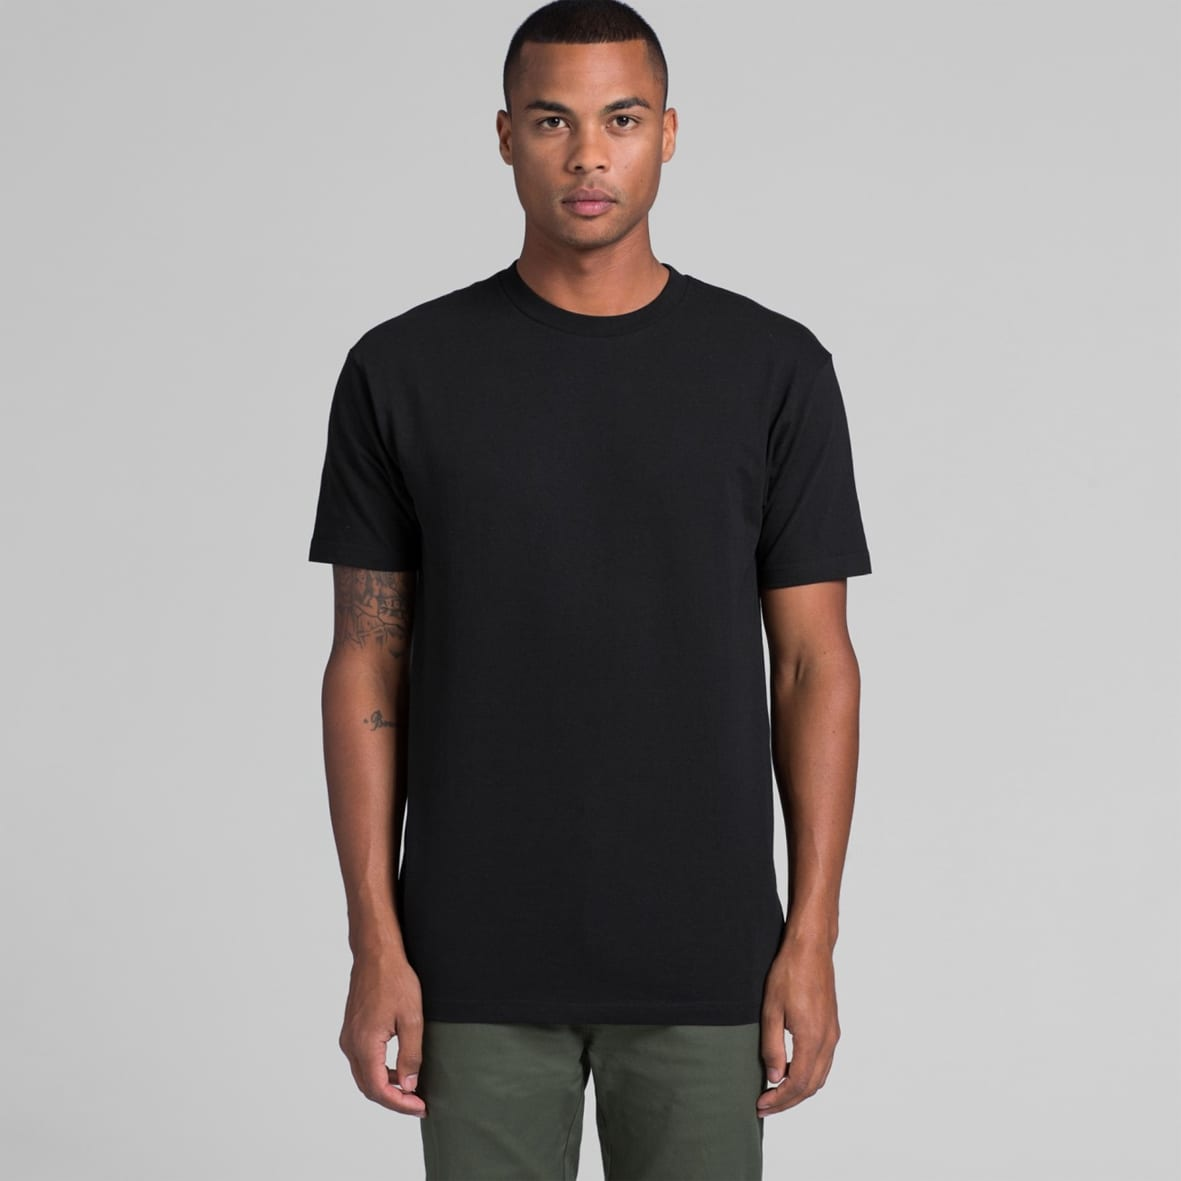 AS 5050 Men's block tee